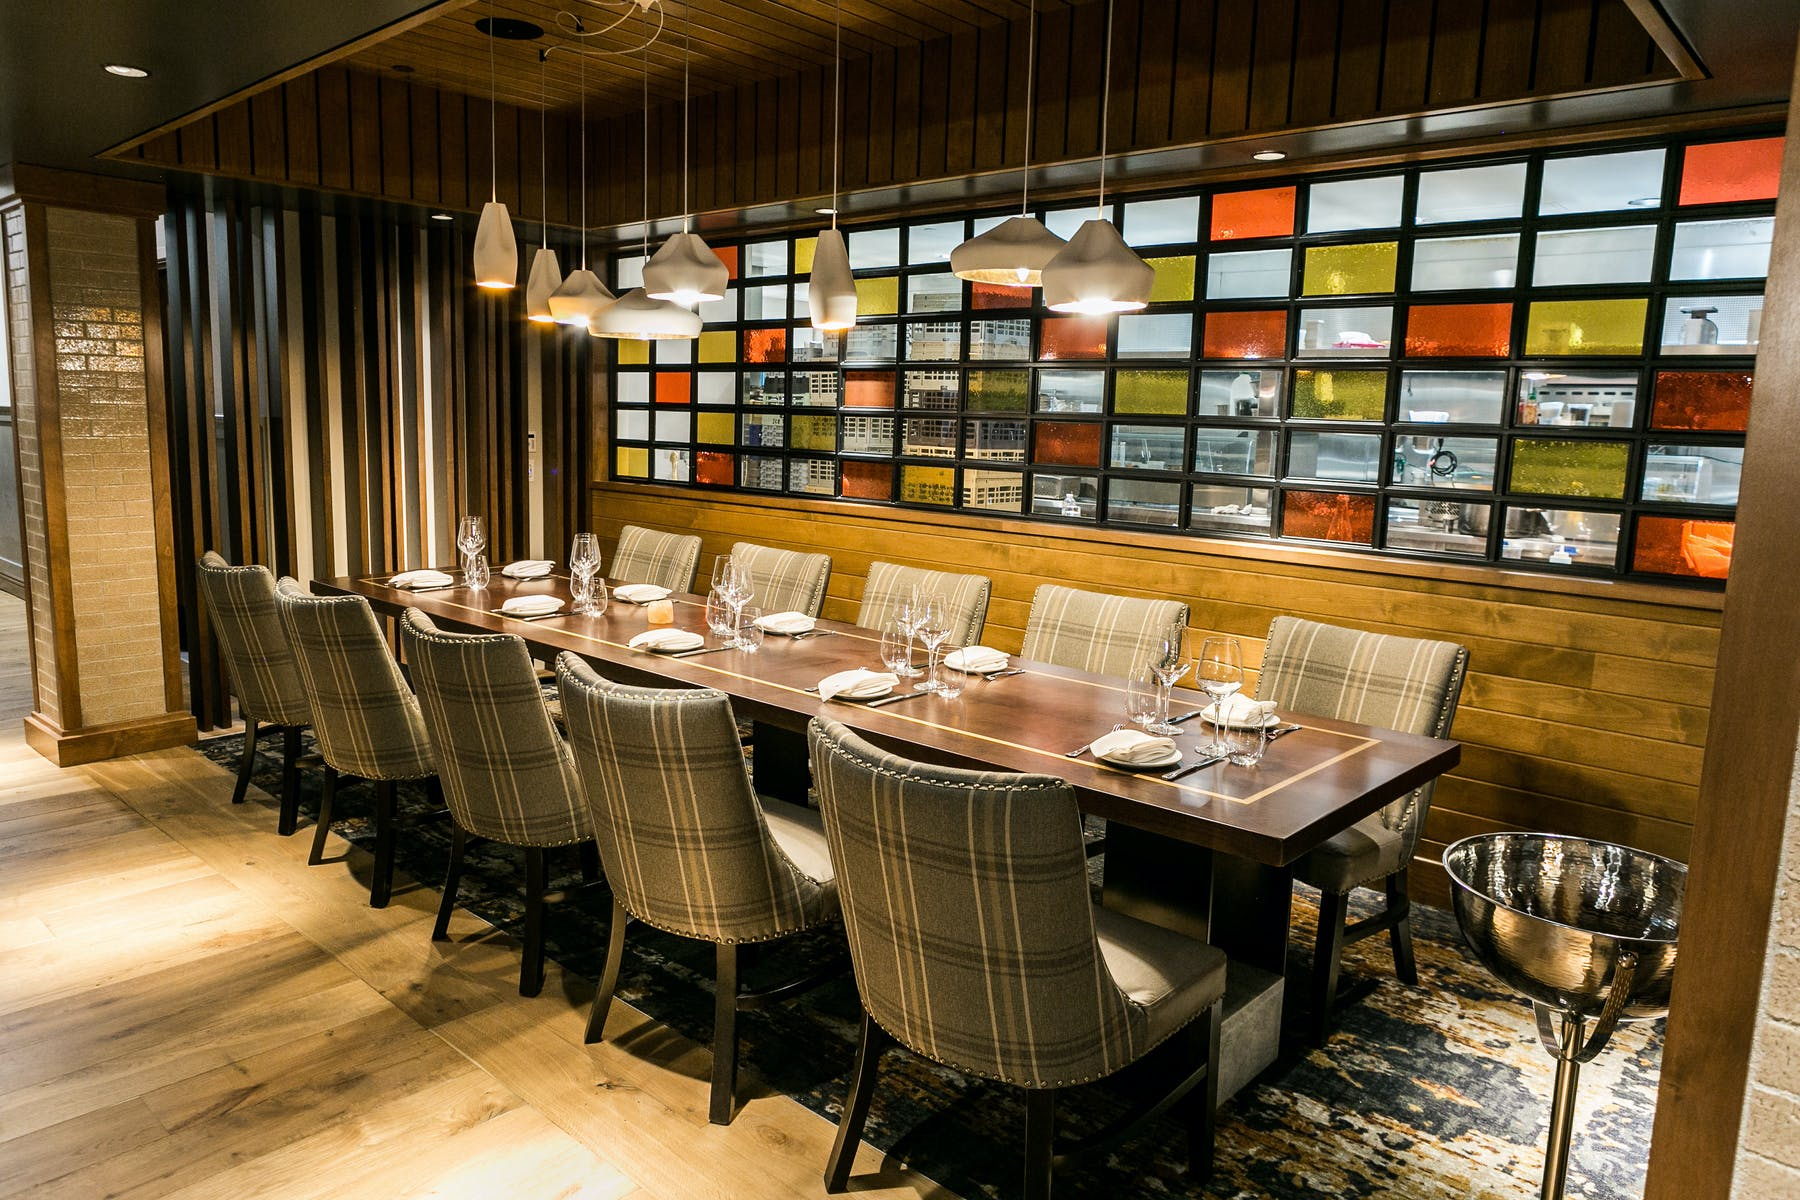 Chef's Table at Castaway